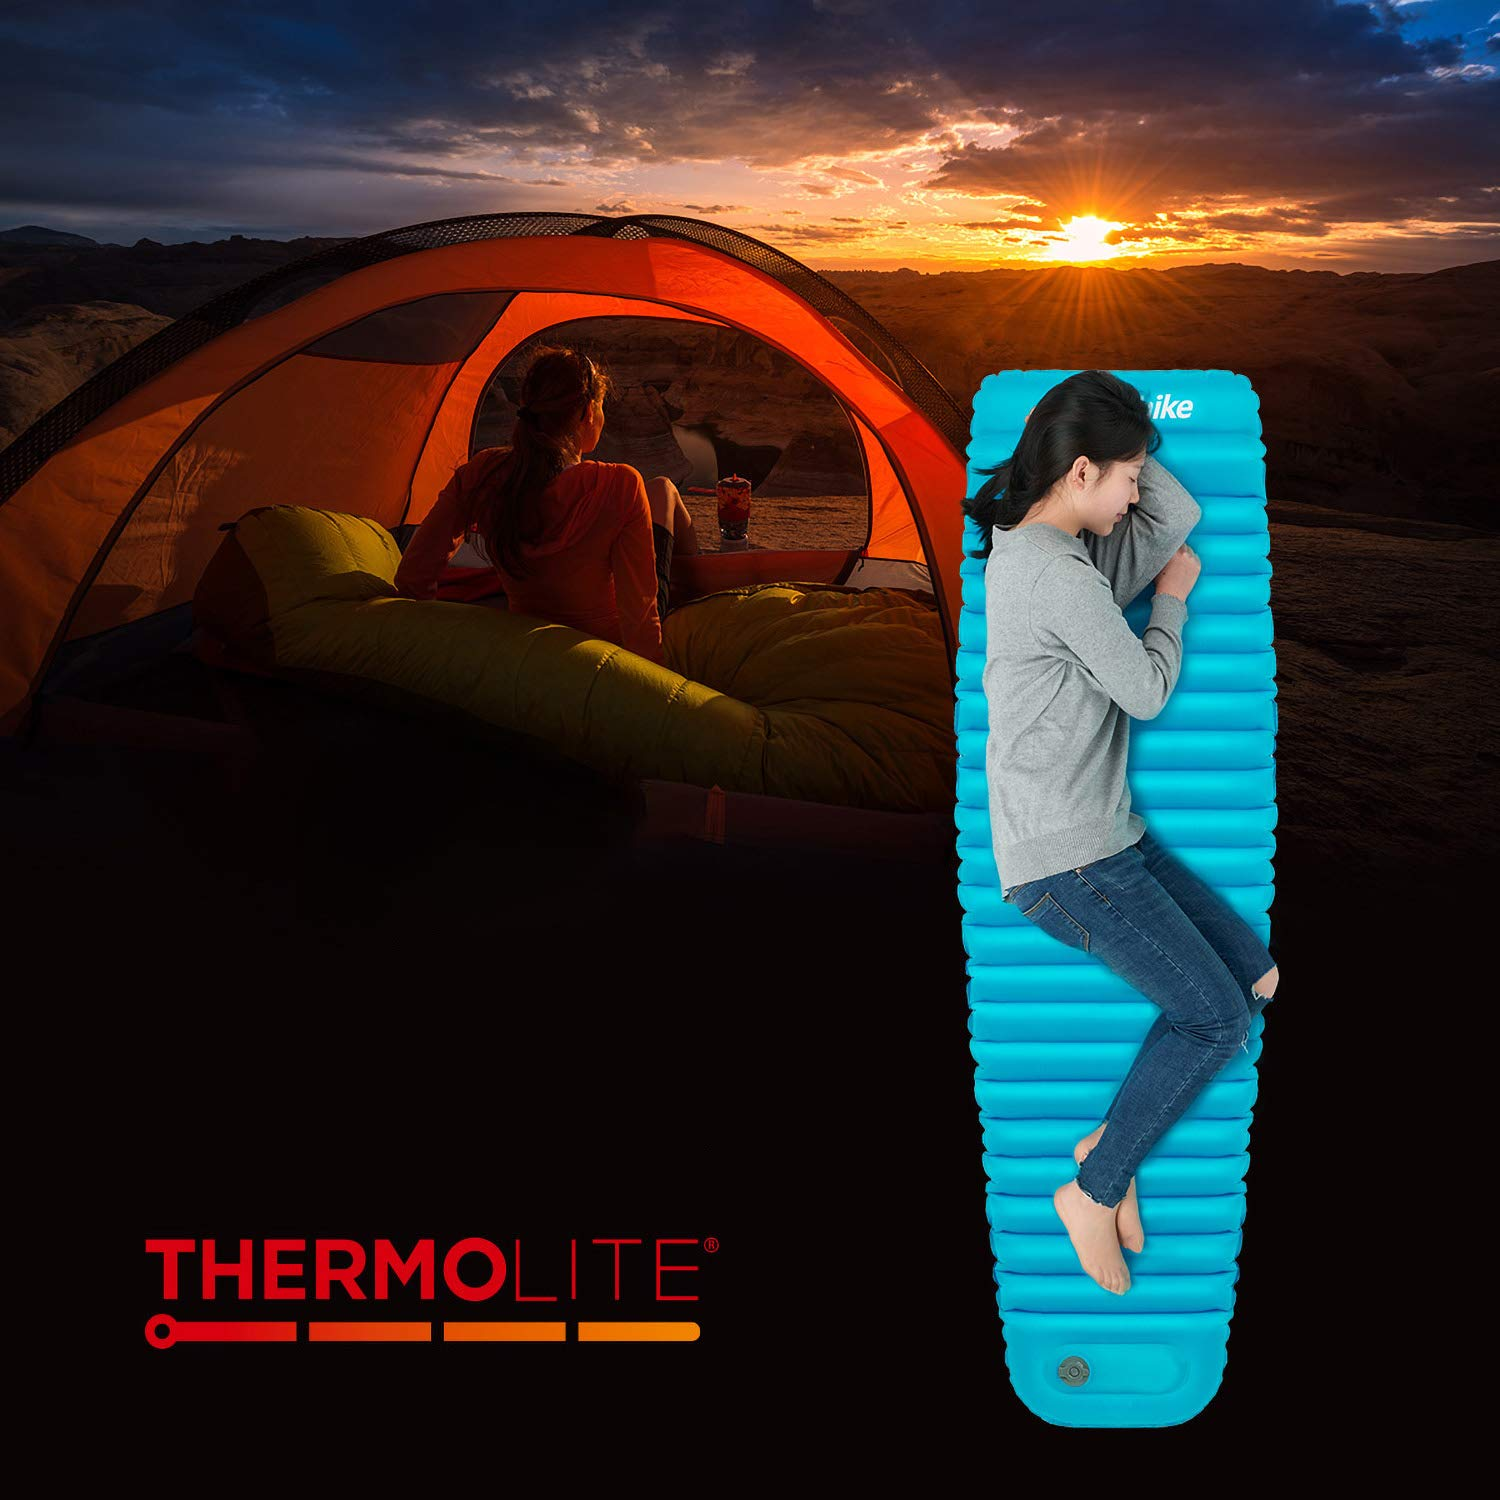 Foreverharbor Portable Size Moisture-Proof Sleeping Pad Picnic Mat Outdoor Camping Tent Inflatable Cushion Waterproof Air Mattress by Foreverharbor (Image #5)